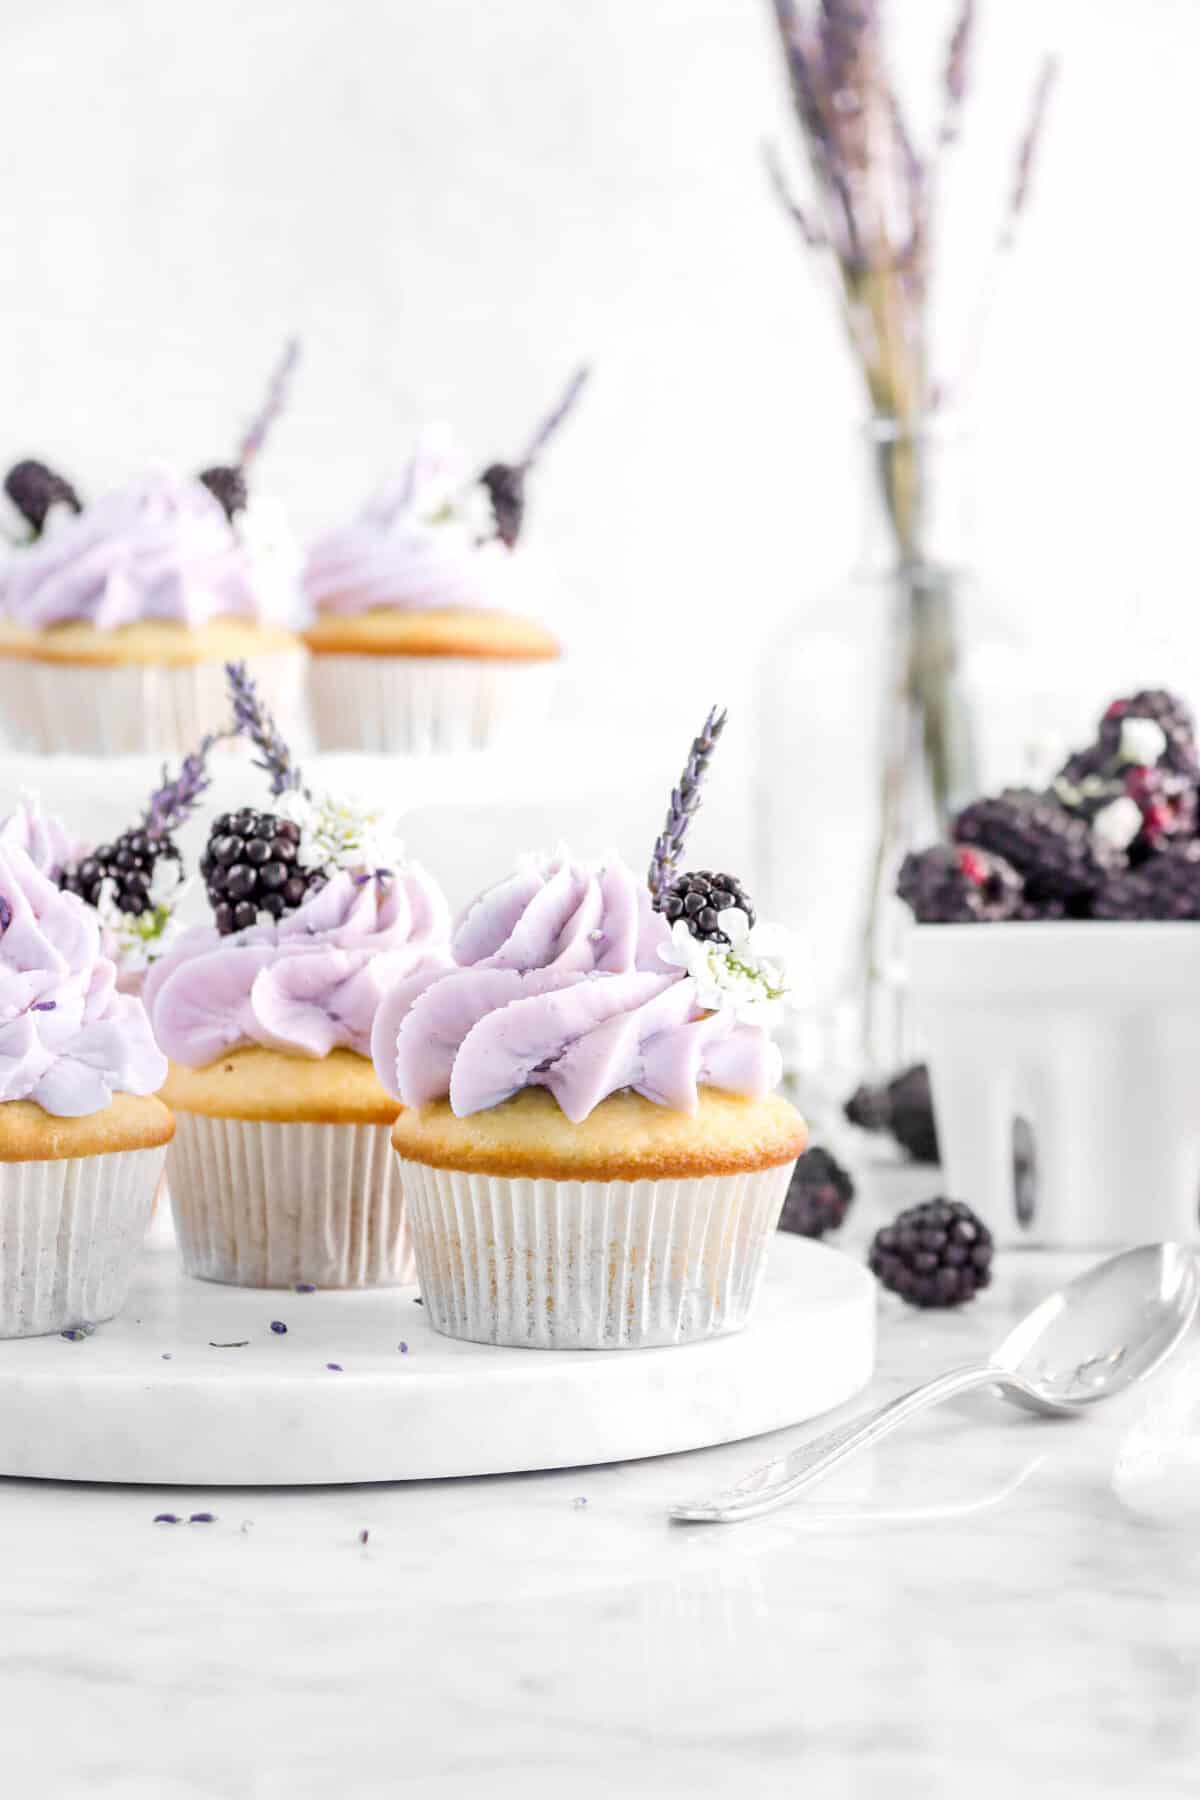 three cupcakes on marble server with more cupcakes behind, jar of lavender, container of blackberries, and a spoon